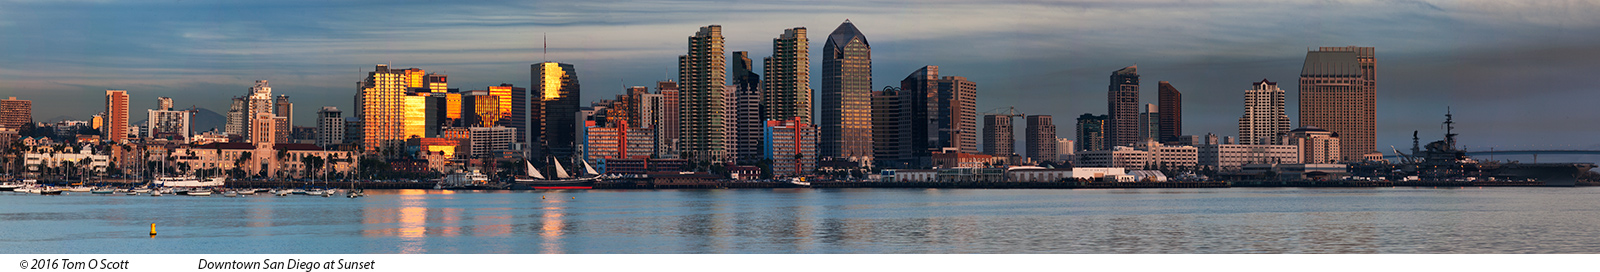 San Diego at Sunset